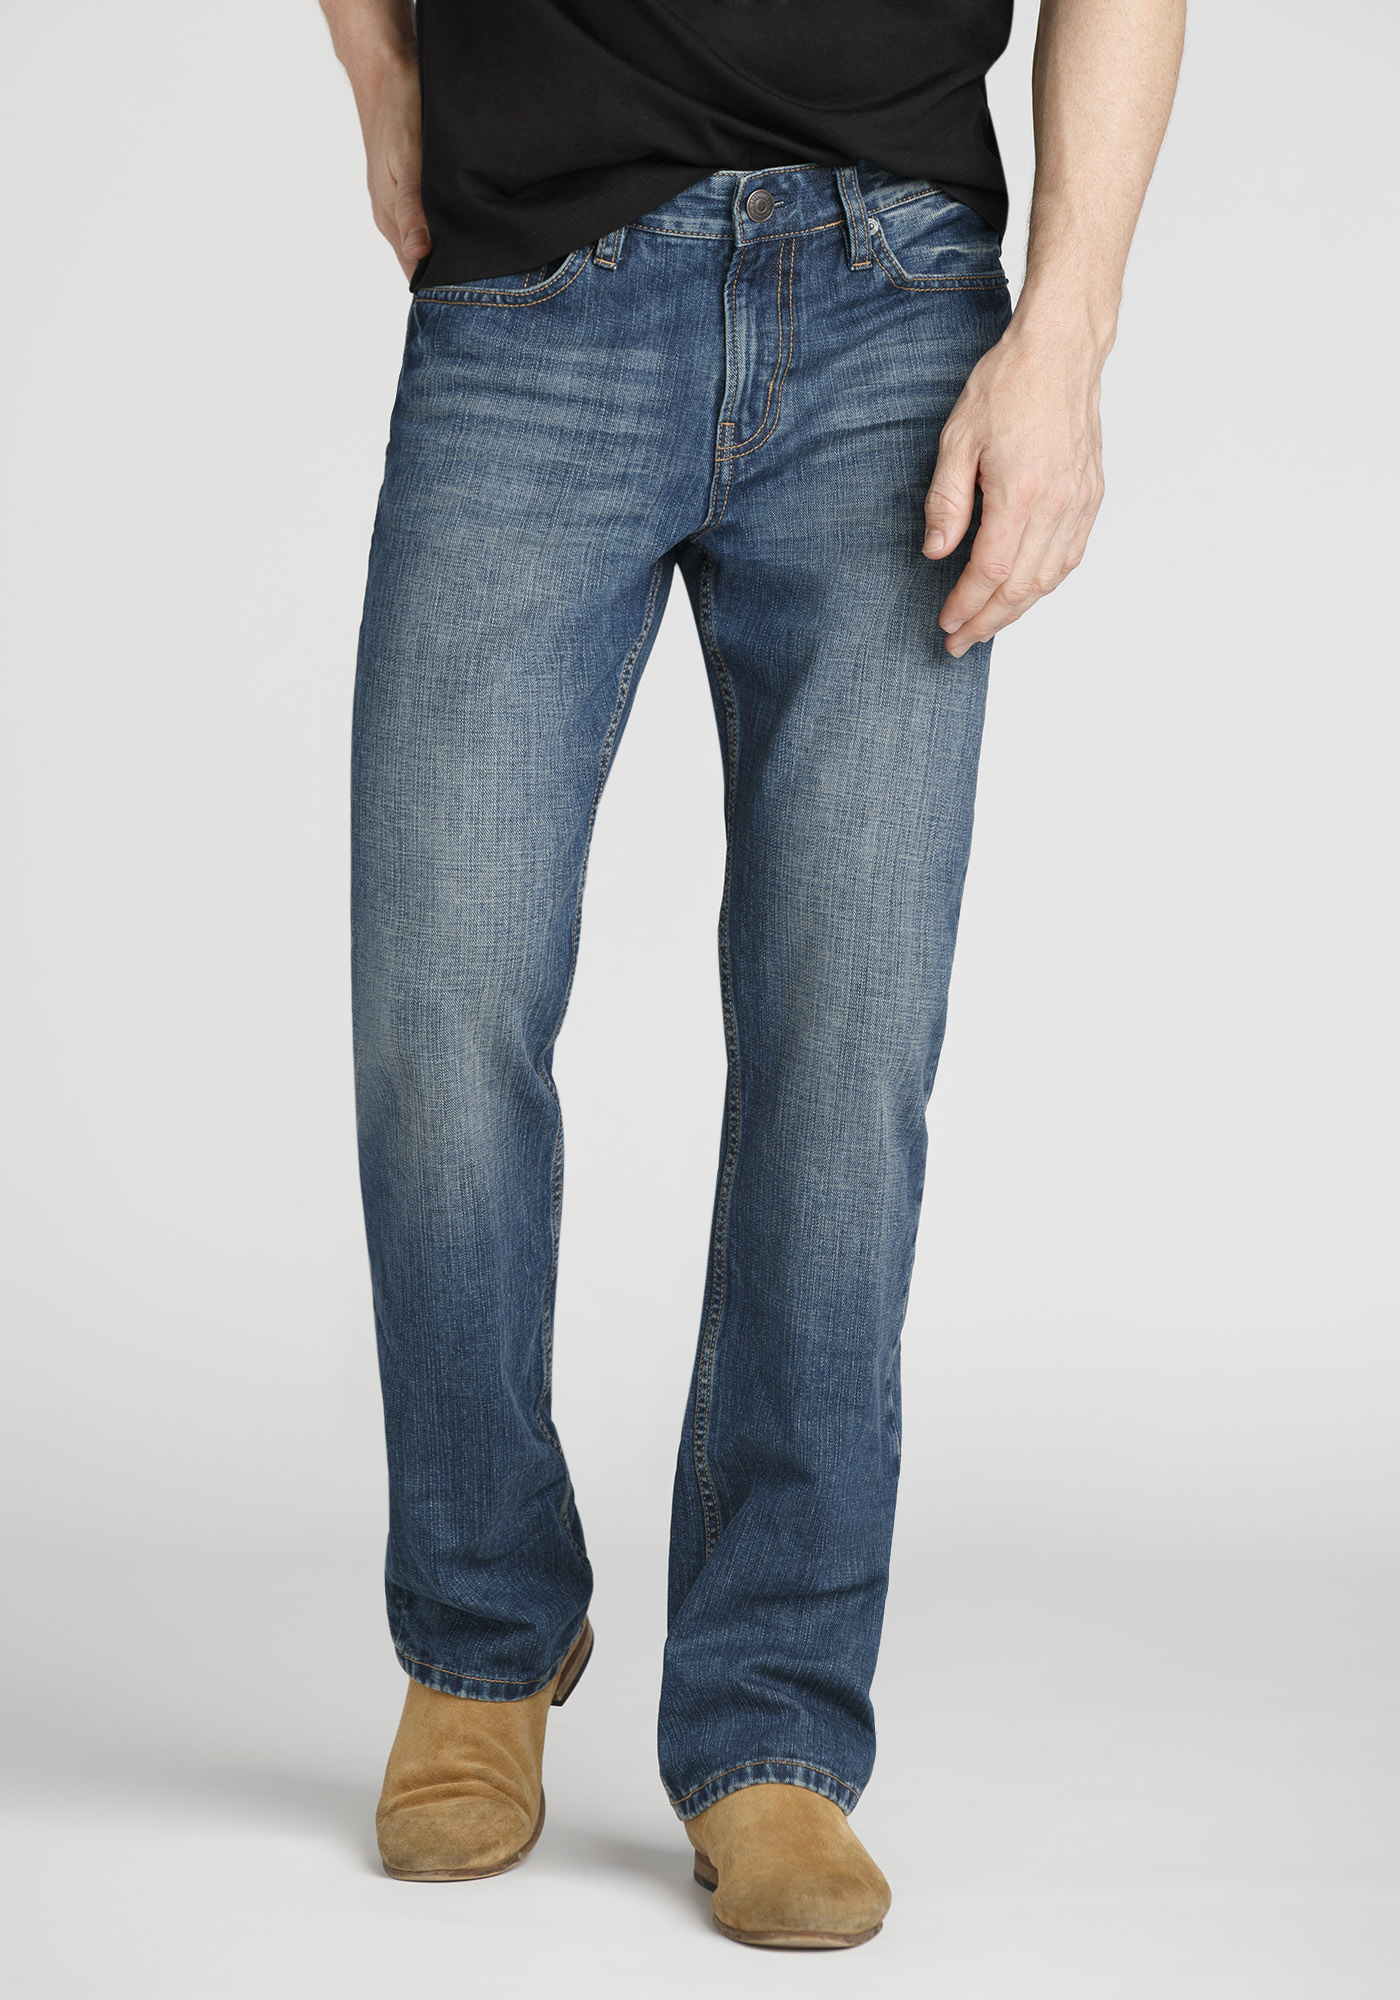 8450a0756e5 Men's Performance Classic Bootcut Jeans, MEDIUM WASH, hi-res